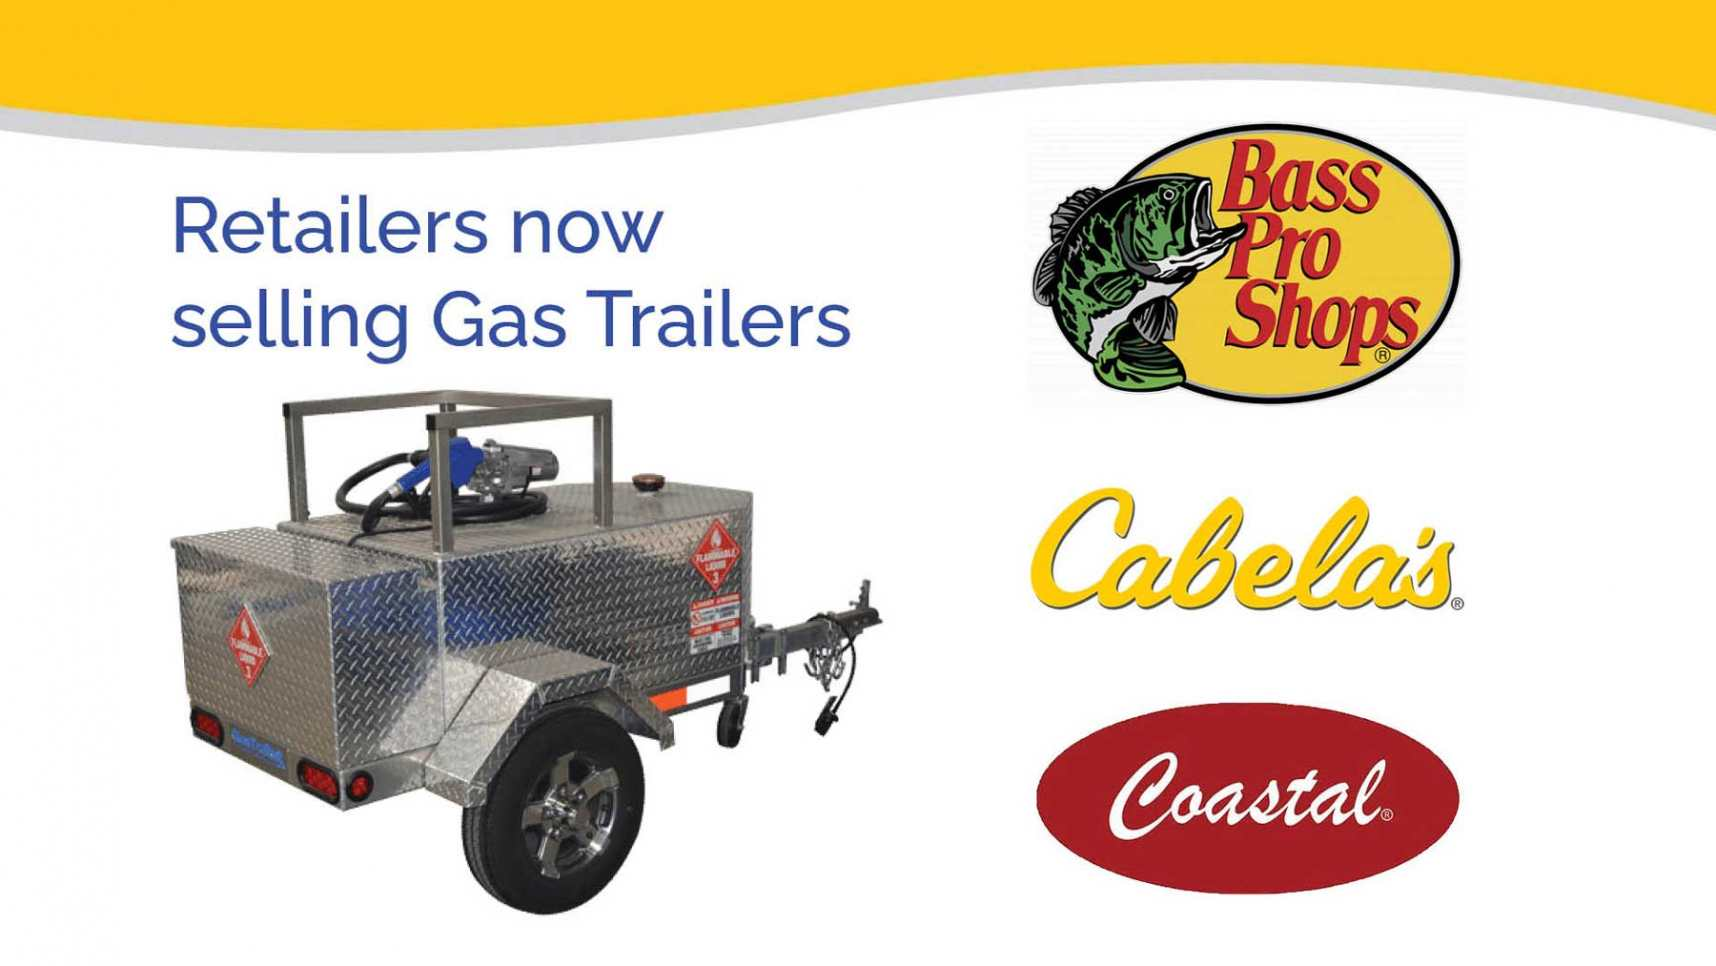 Gas Trailers available through Bass Pro Shops